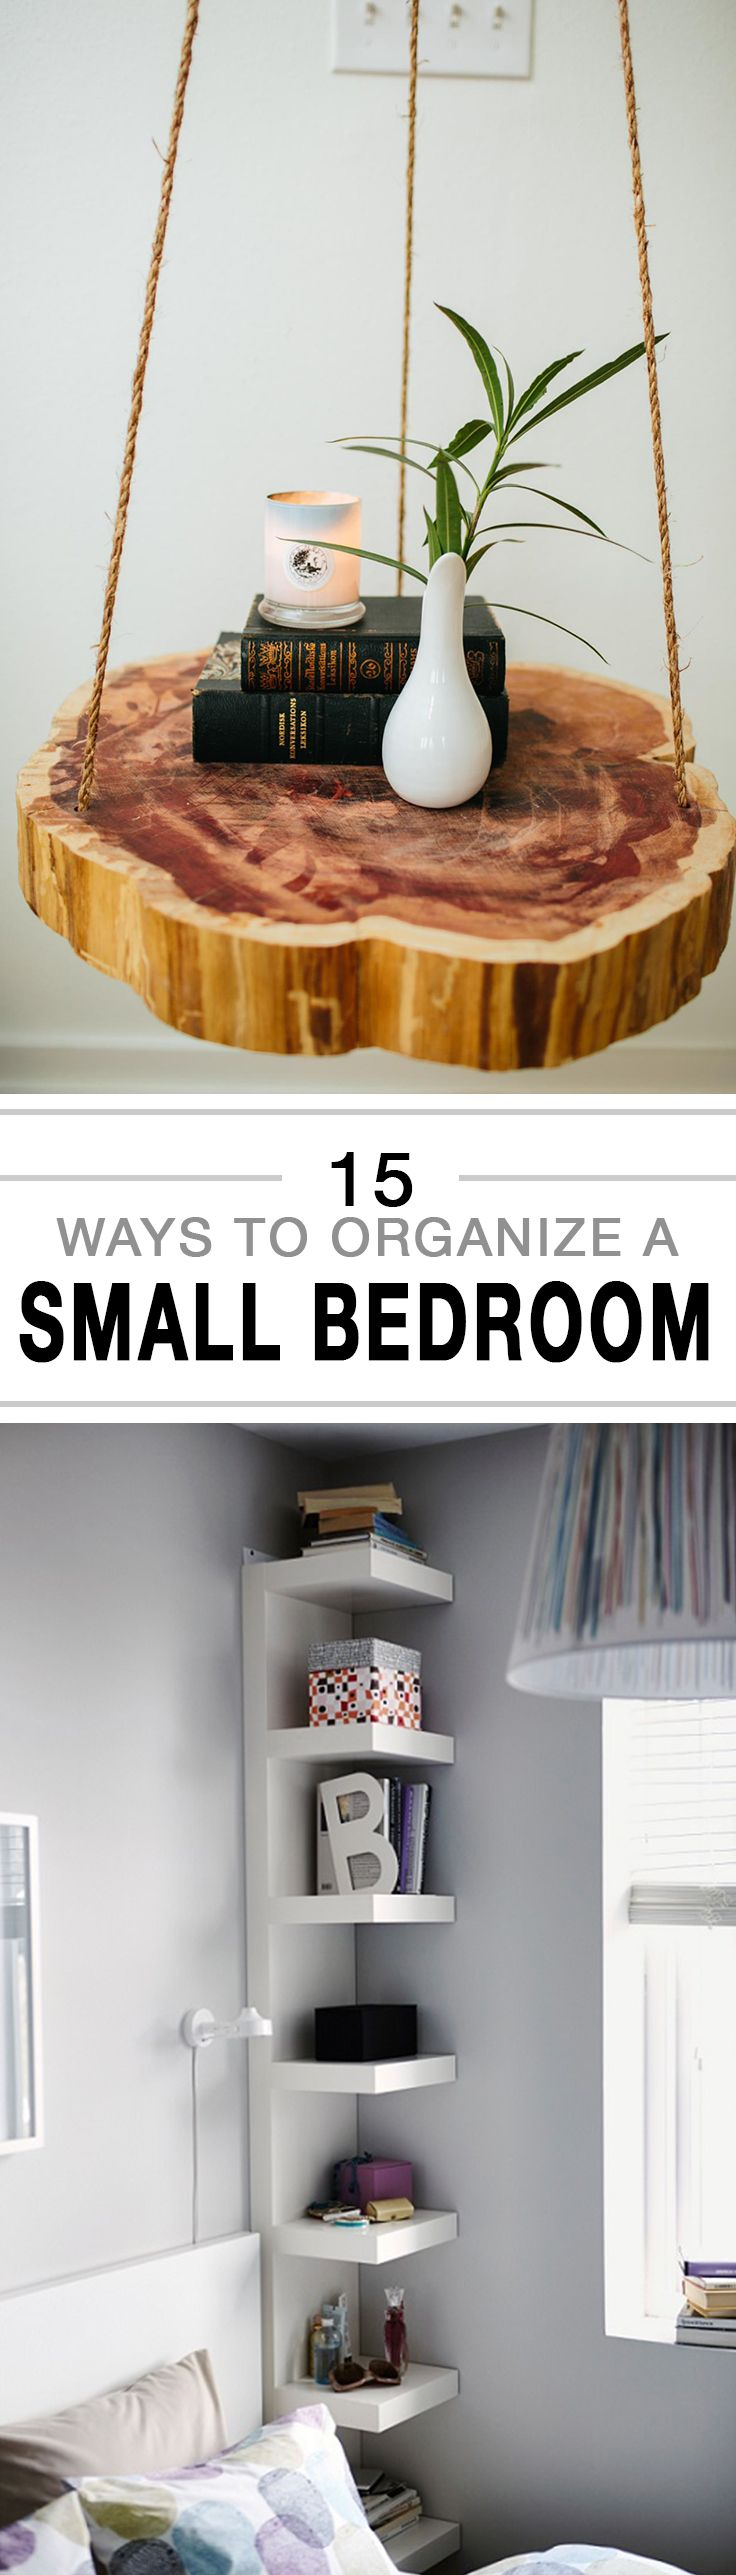 Ideas To Organize A Small Bedroom Part - 24: 15 Ways To Organize A Small Bedroom - More